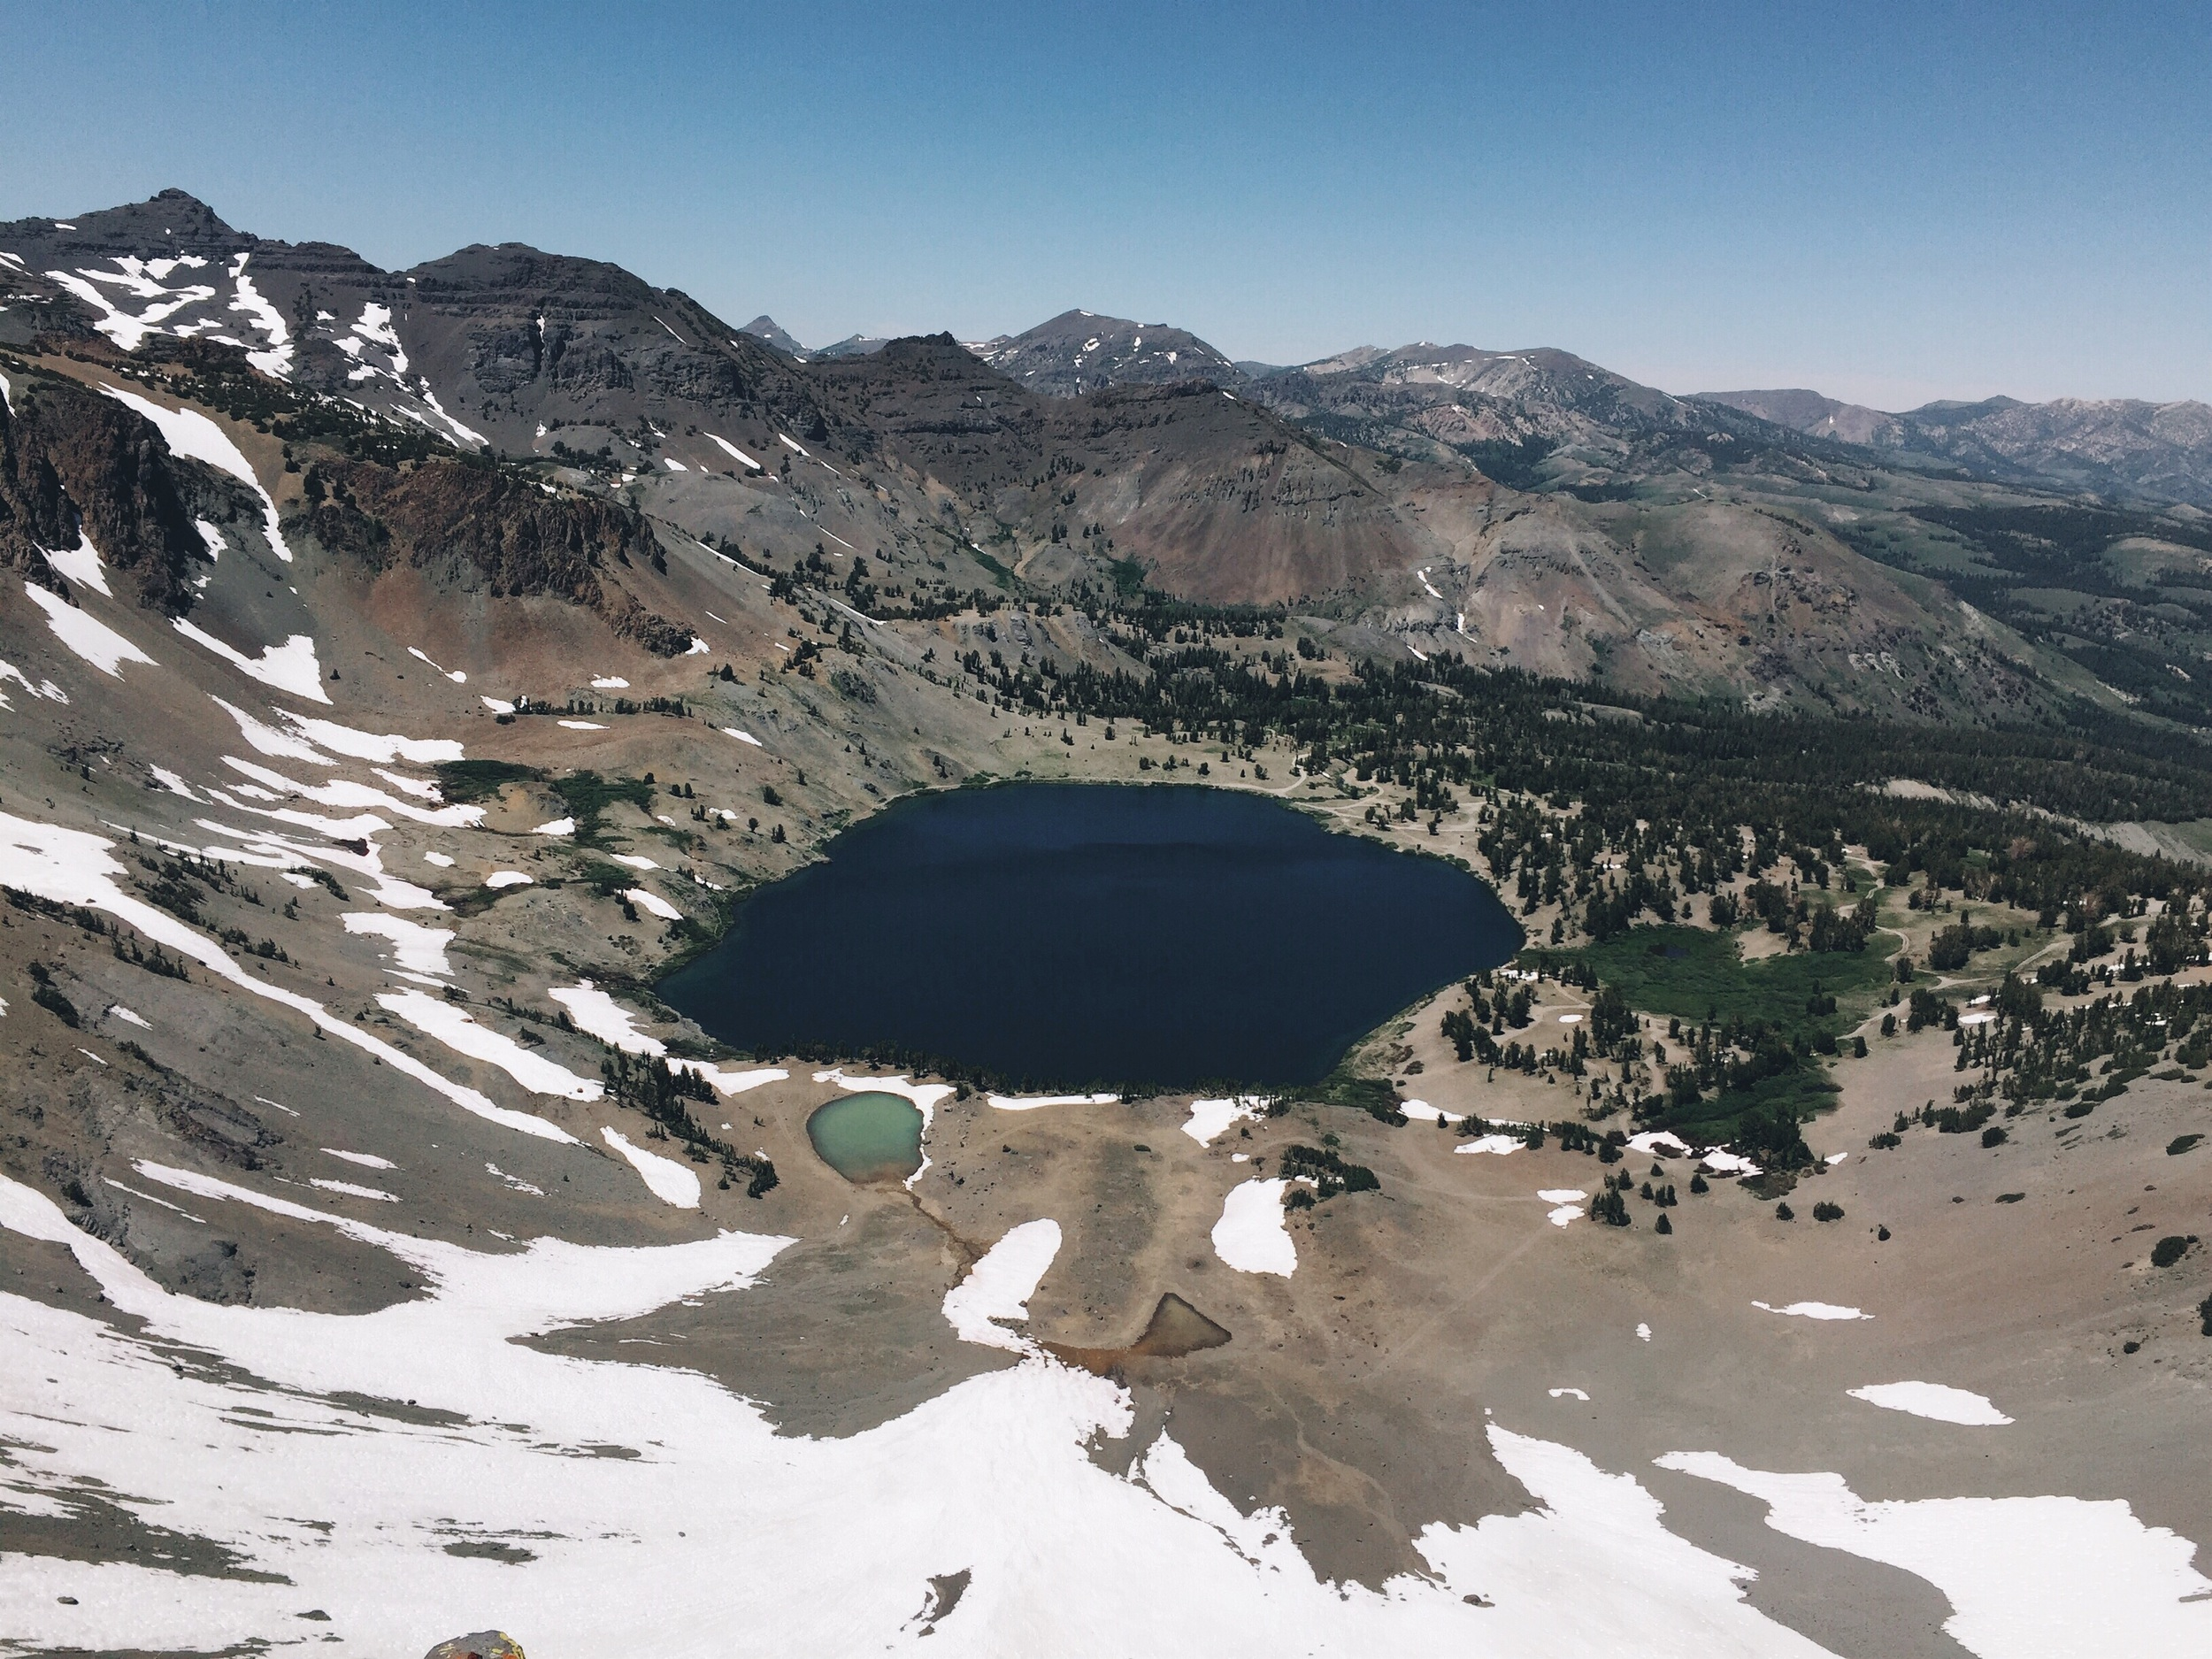 Some views of lakes from above.